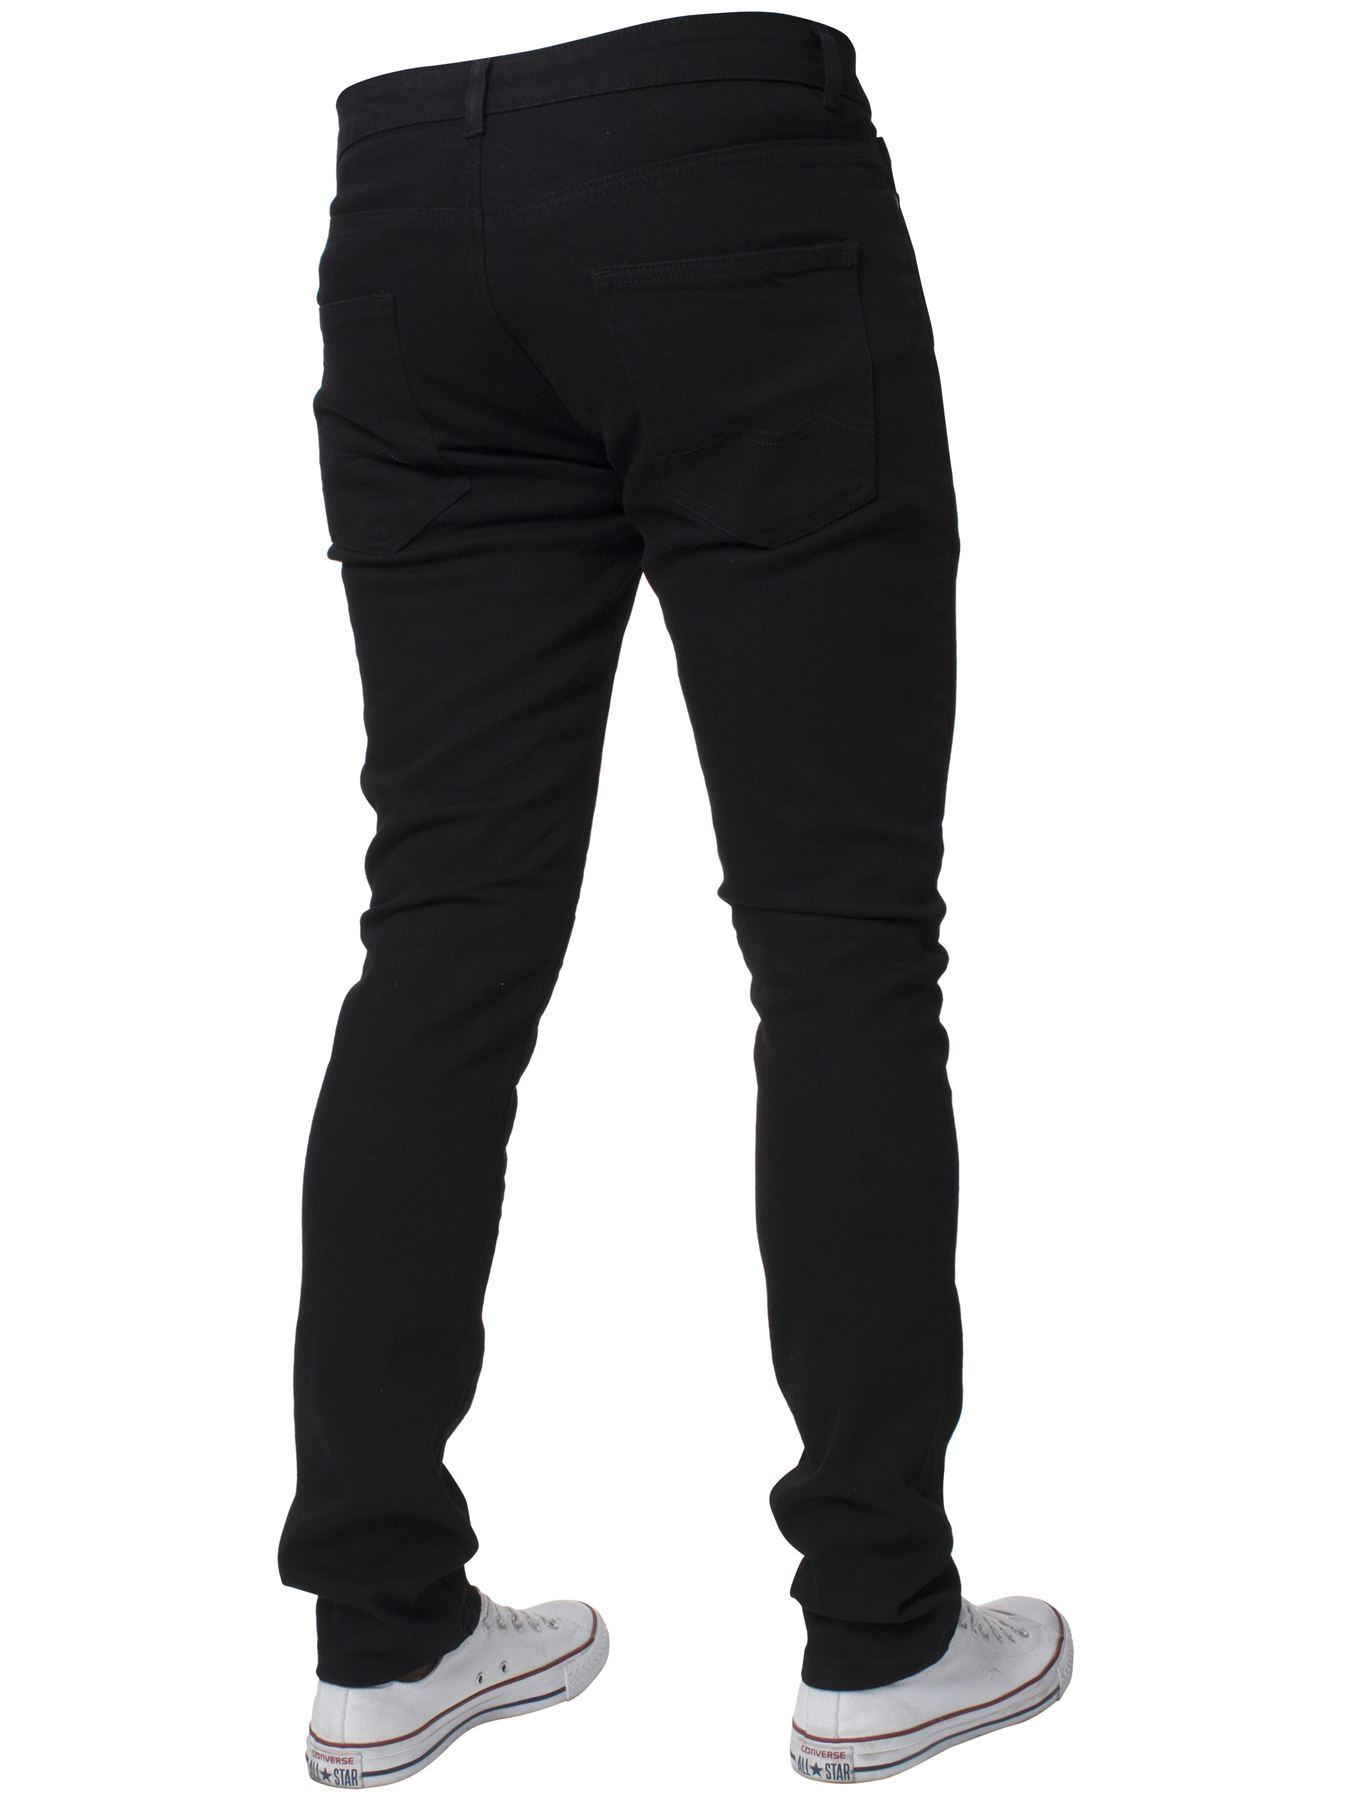 Mens-Skinny-Stretch-Jeans-Slim-Fit-Flex-Denim-Trousers-Pants-King-Sizes-by-Kruze thumbnail 5